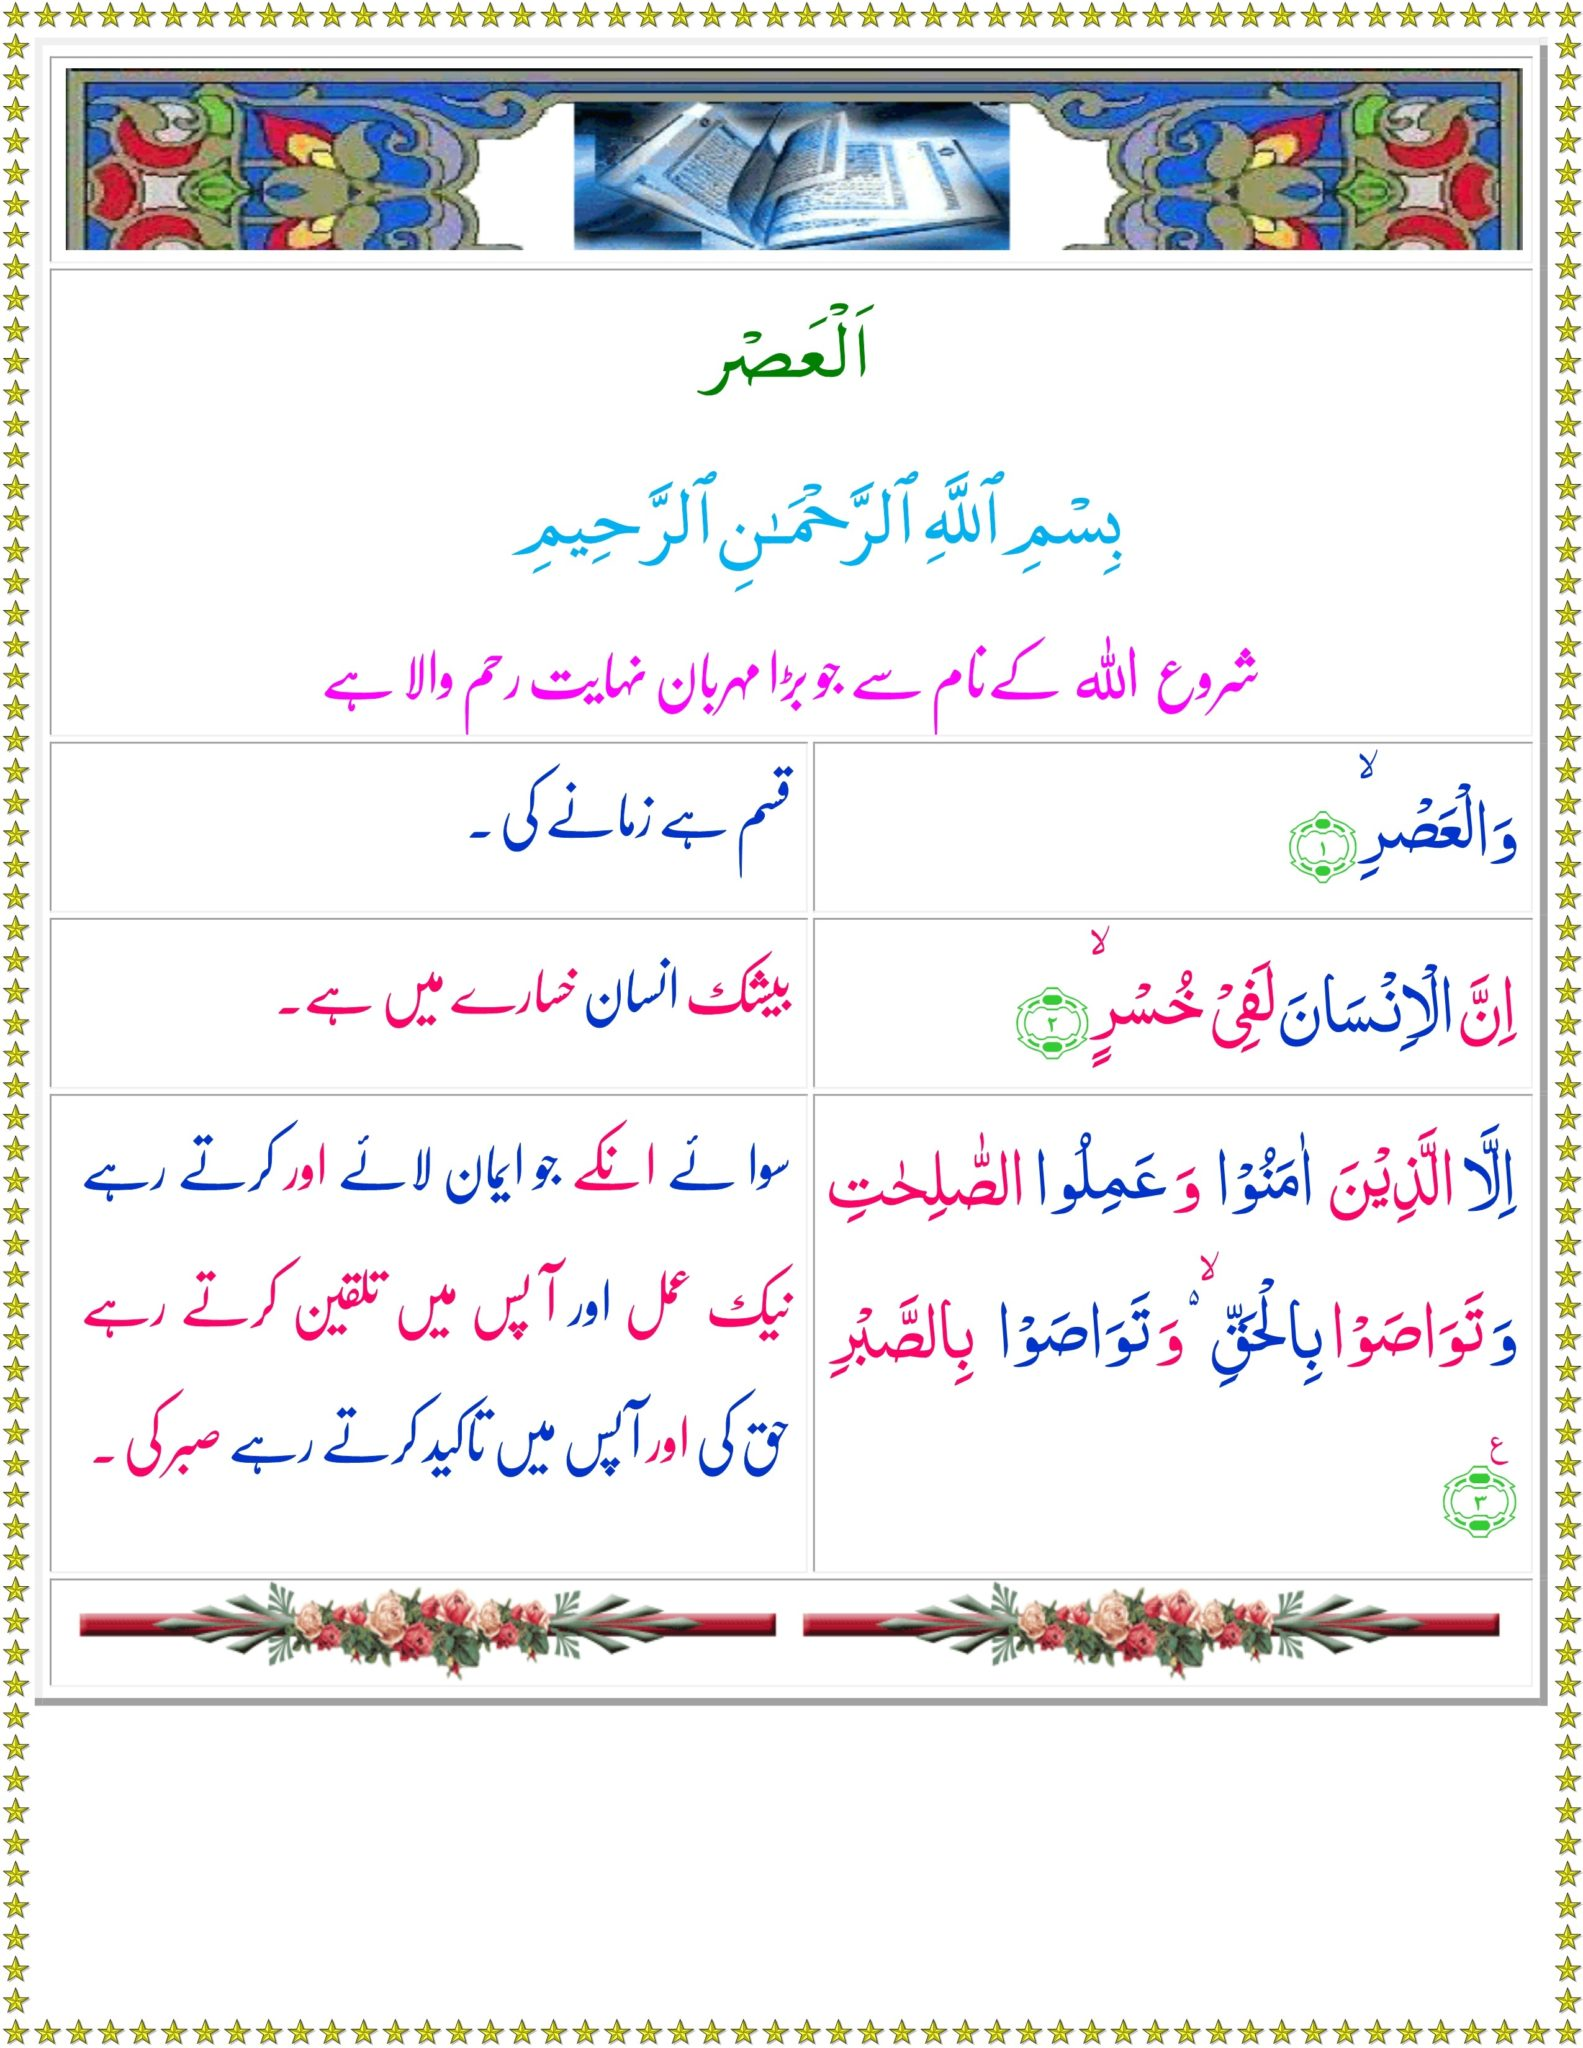 Surah Asr translation in Urdu, Hindi